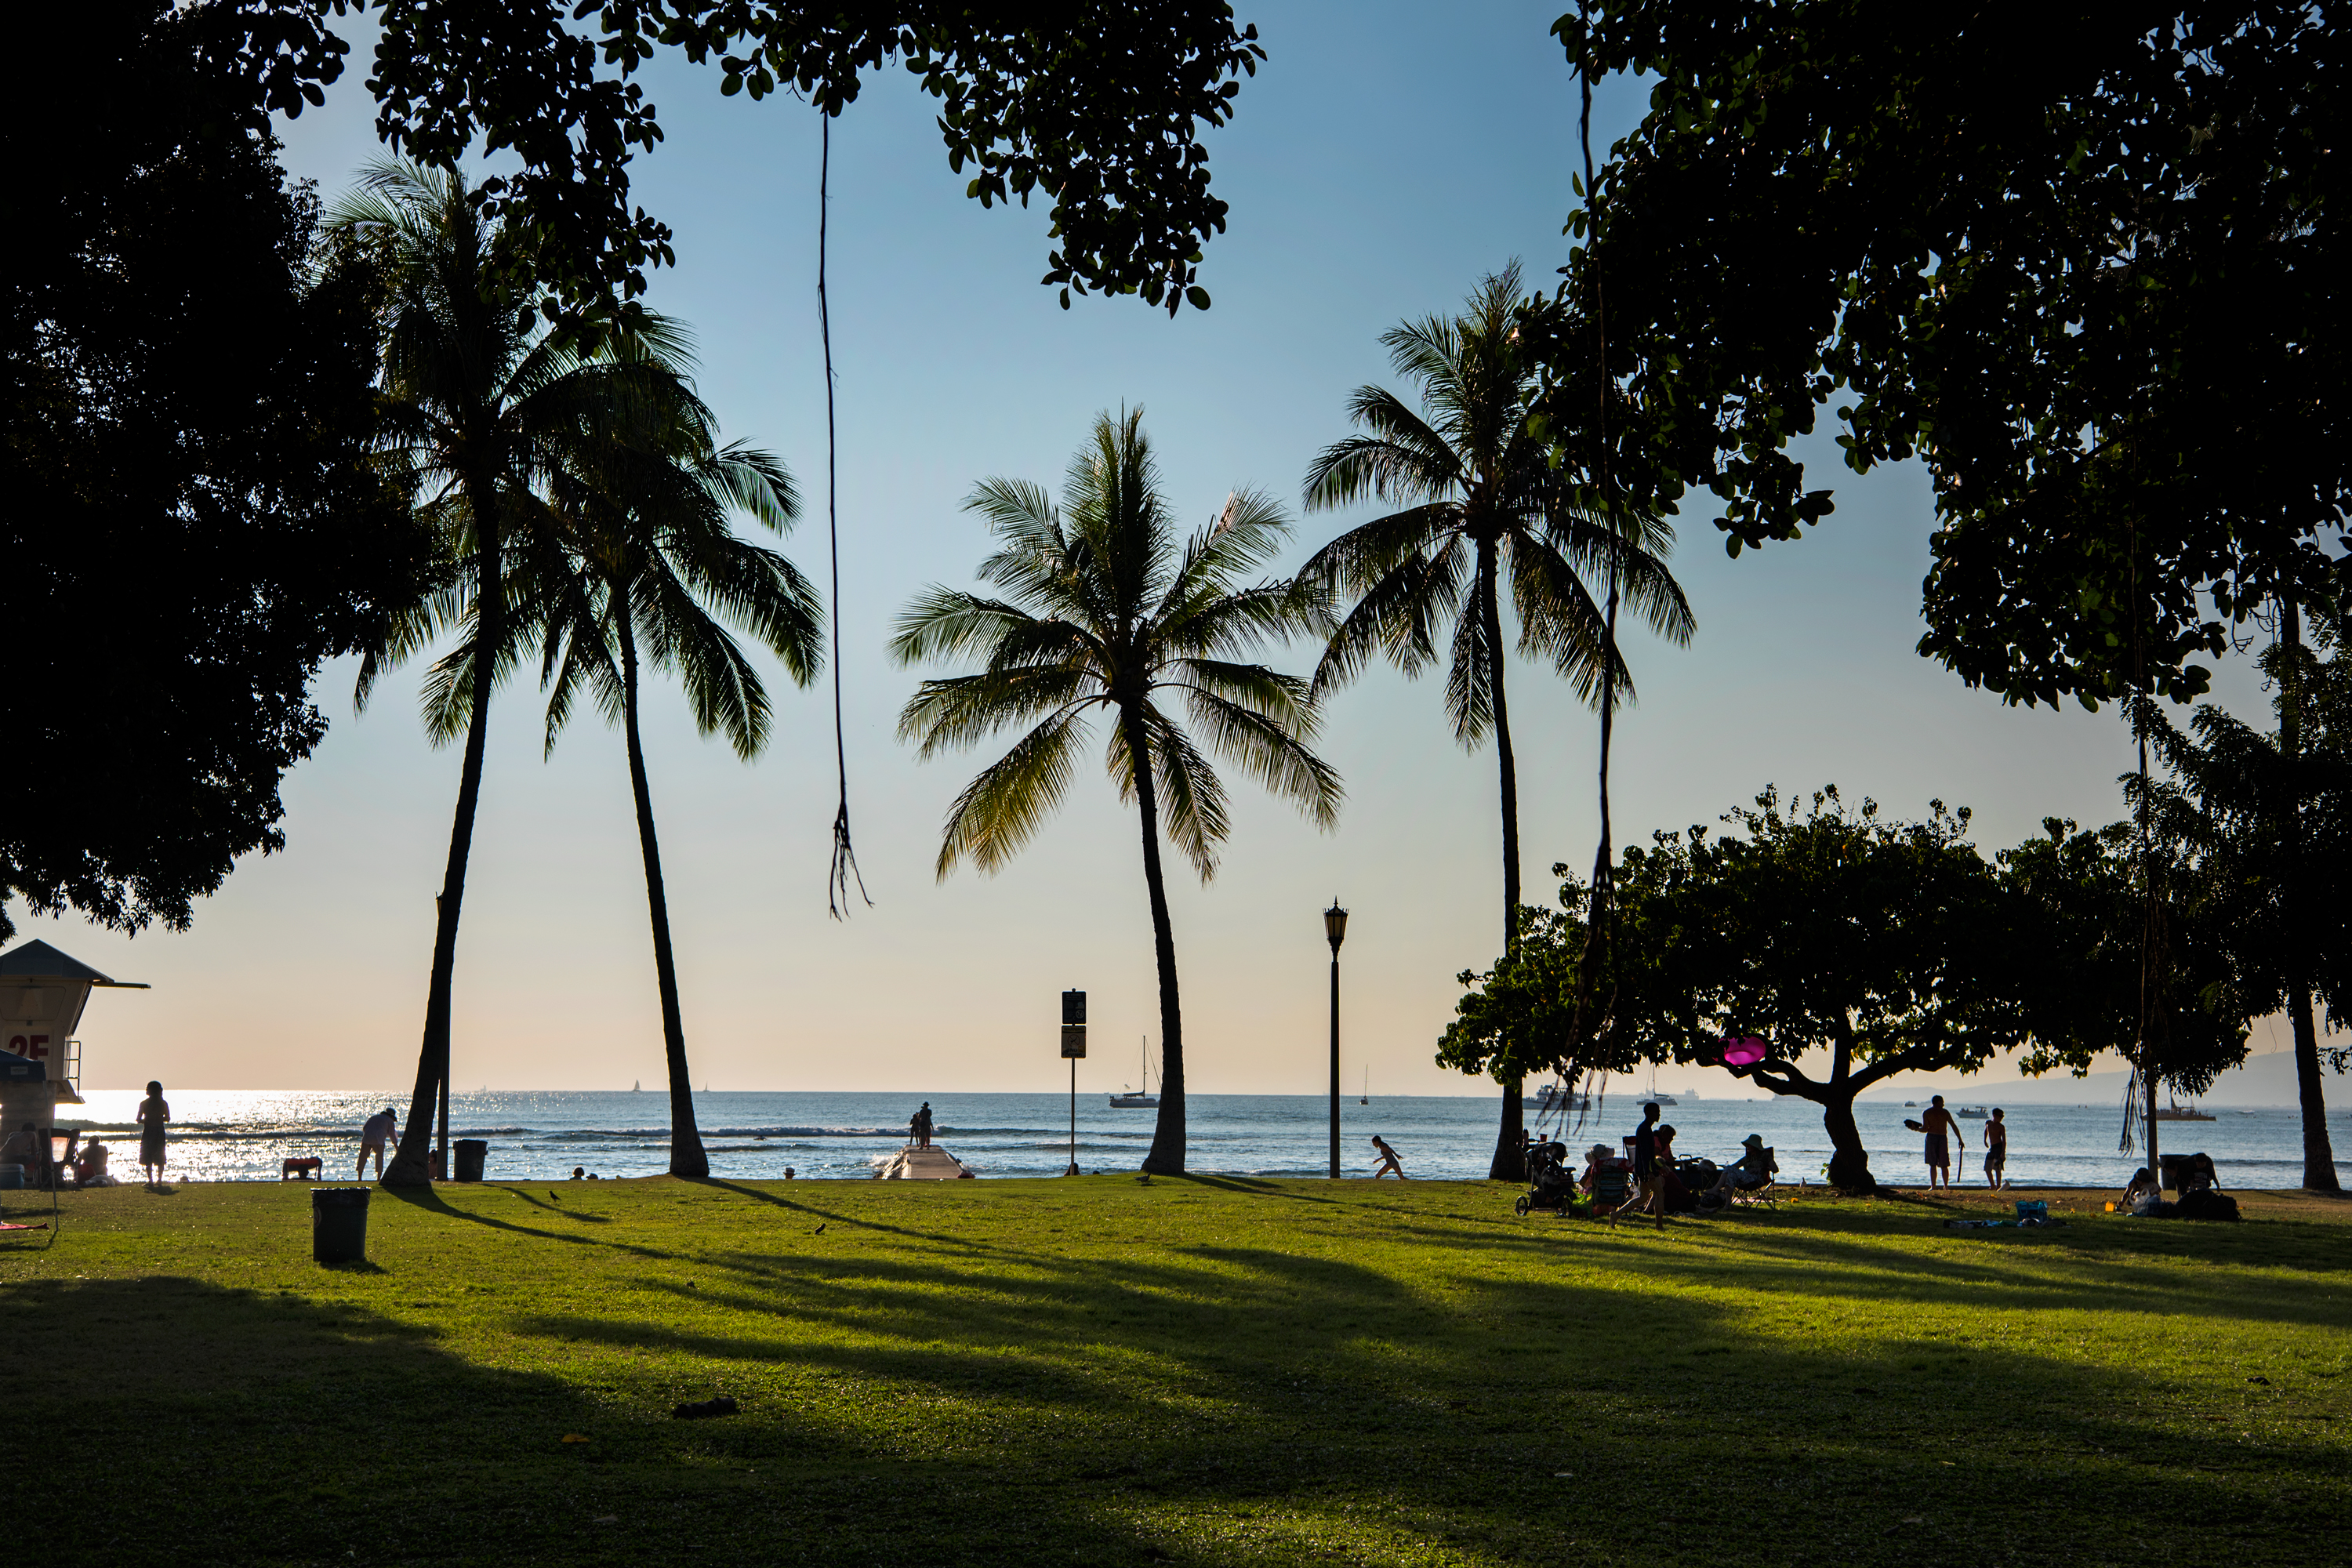 Late Afternoon, Kapiolani Park